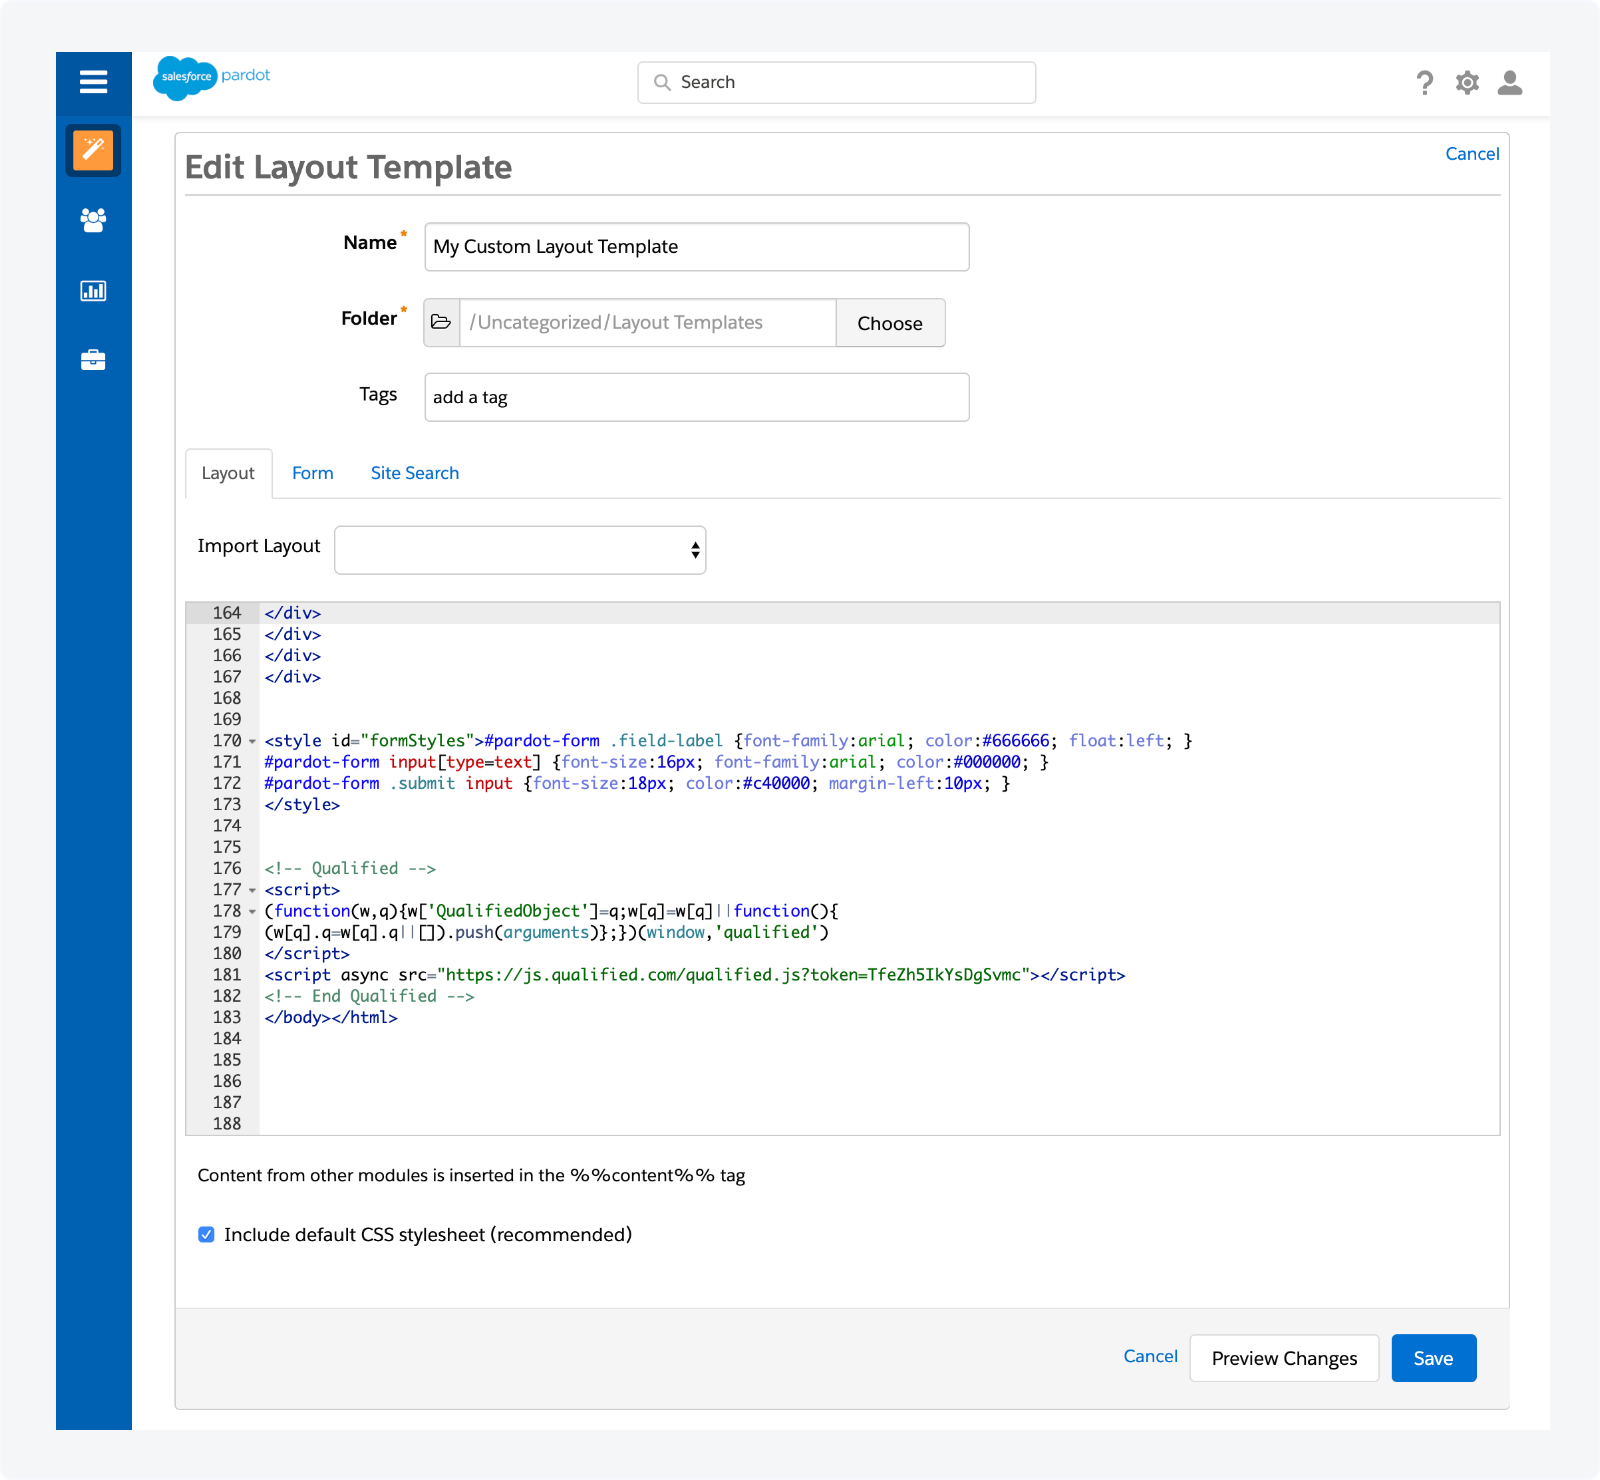 Adding the Qualified javascript snippet to your Pardot custom layout templates